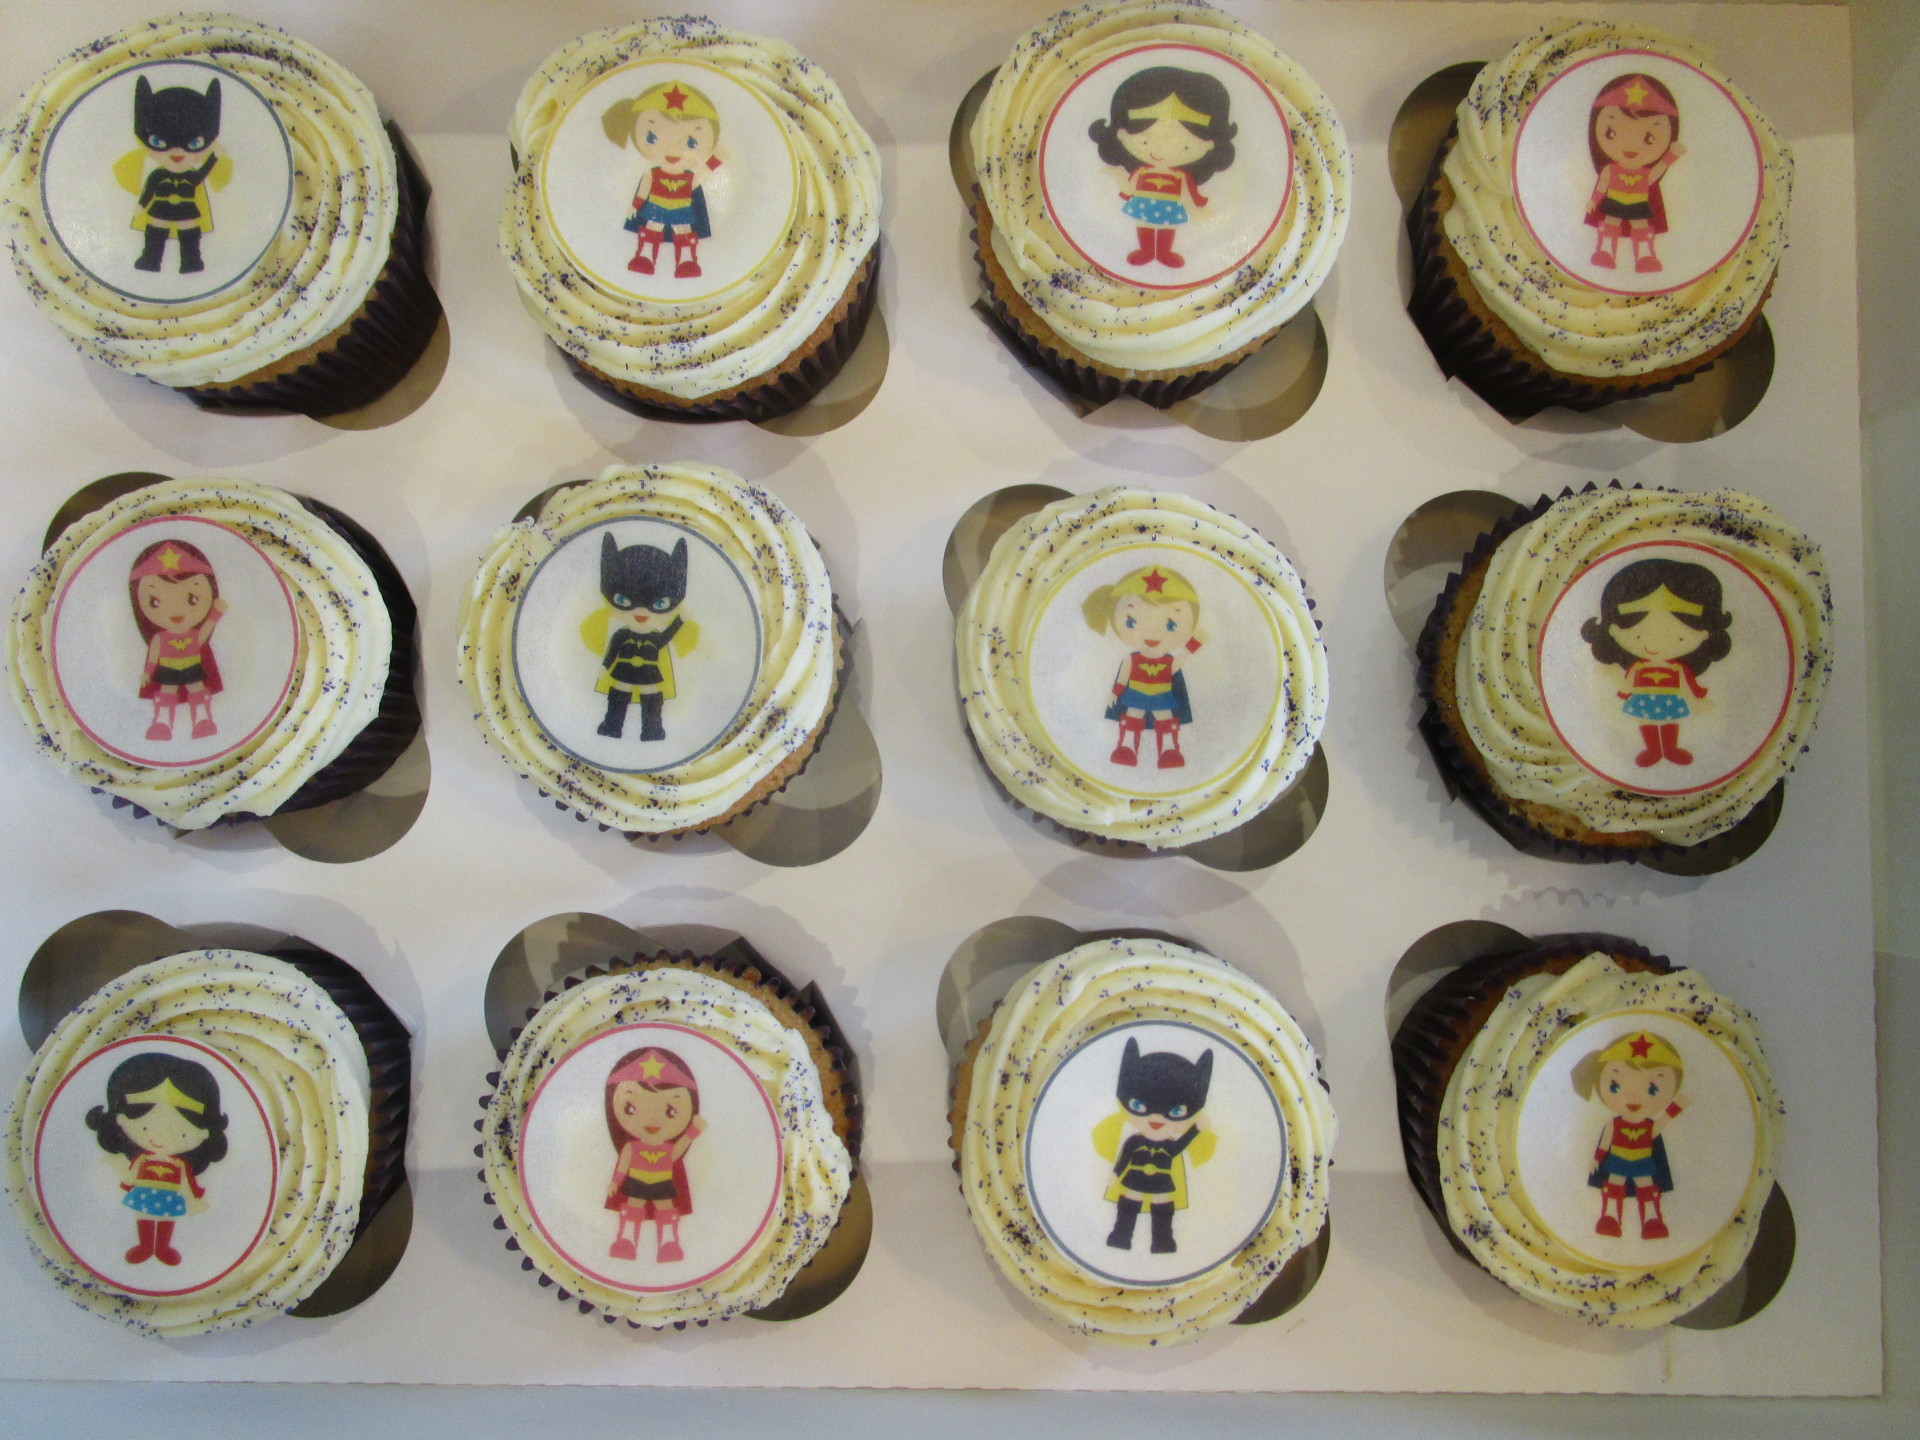 Vanilla Swirl Cupcakes with Edible Glitter and Wafer Superhero Toppers